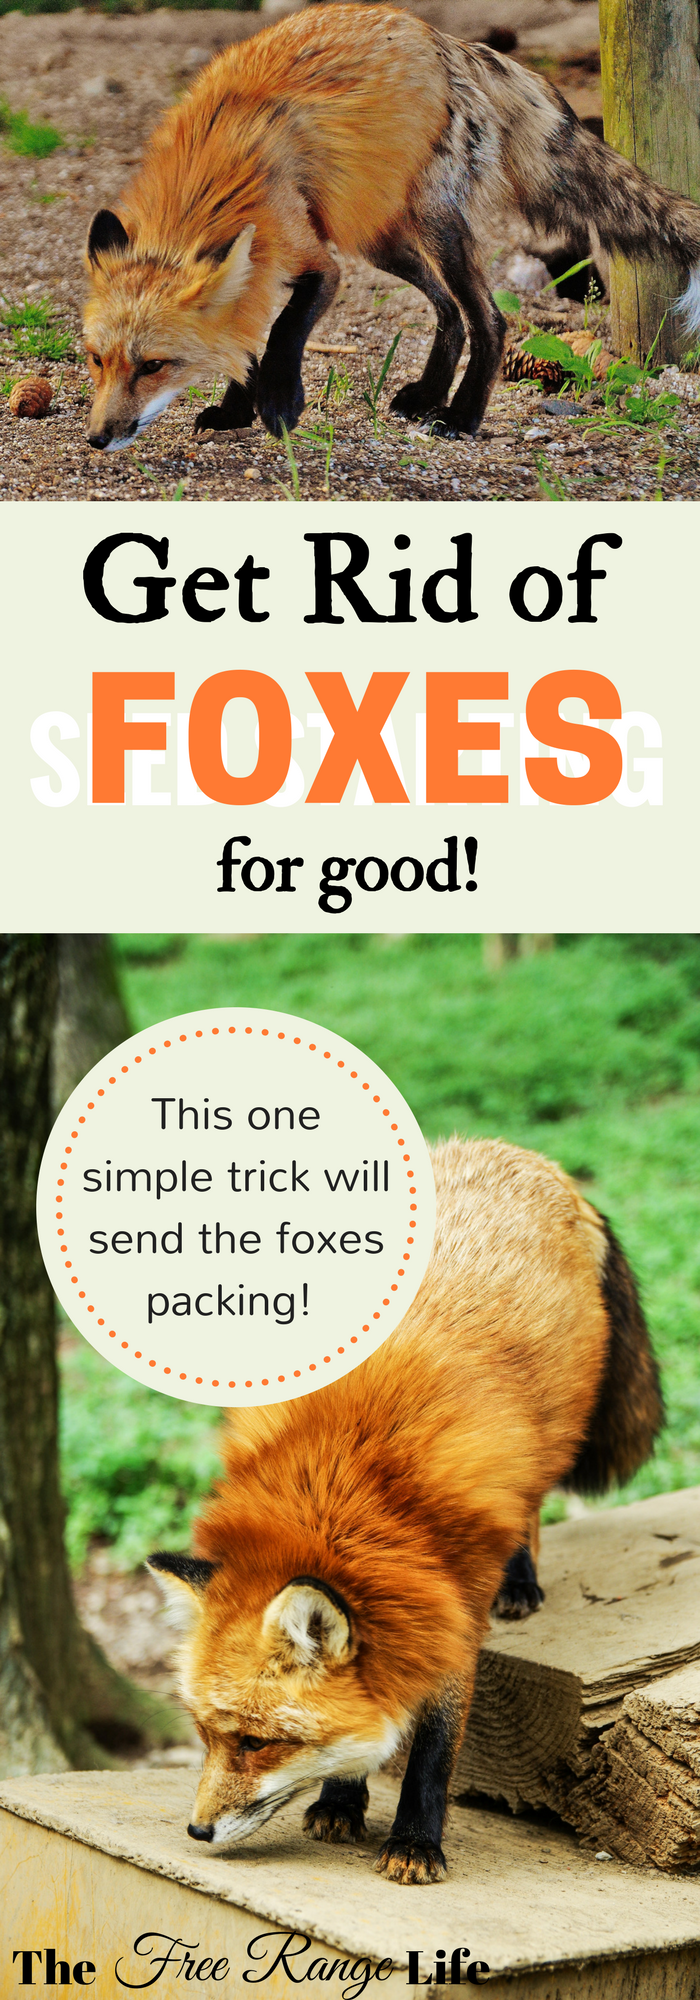 The Number 1 Way To Get Rid Of Foxes For Good Chickens Backyard Free Range Chickens Fox